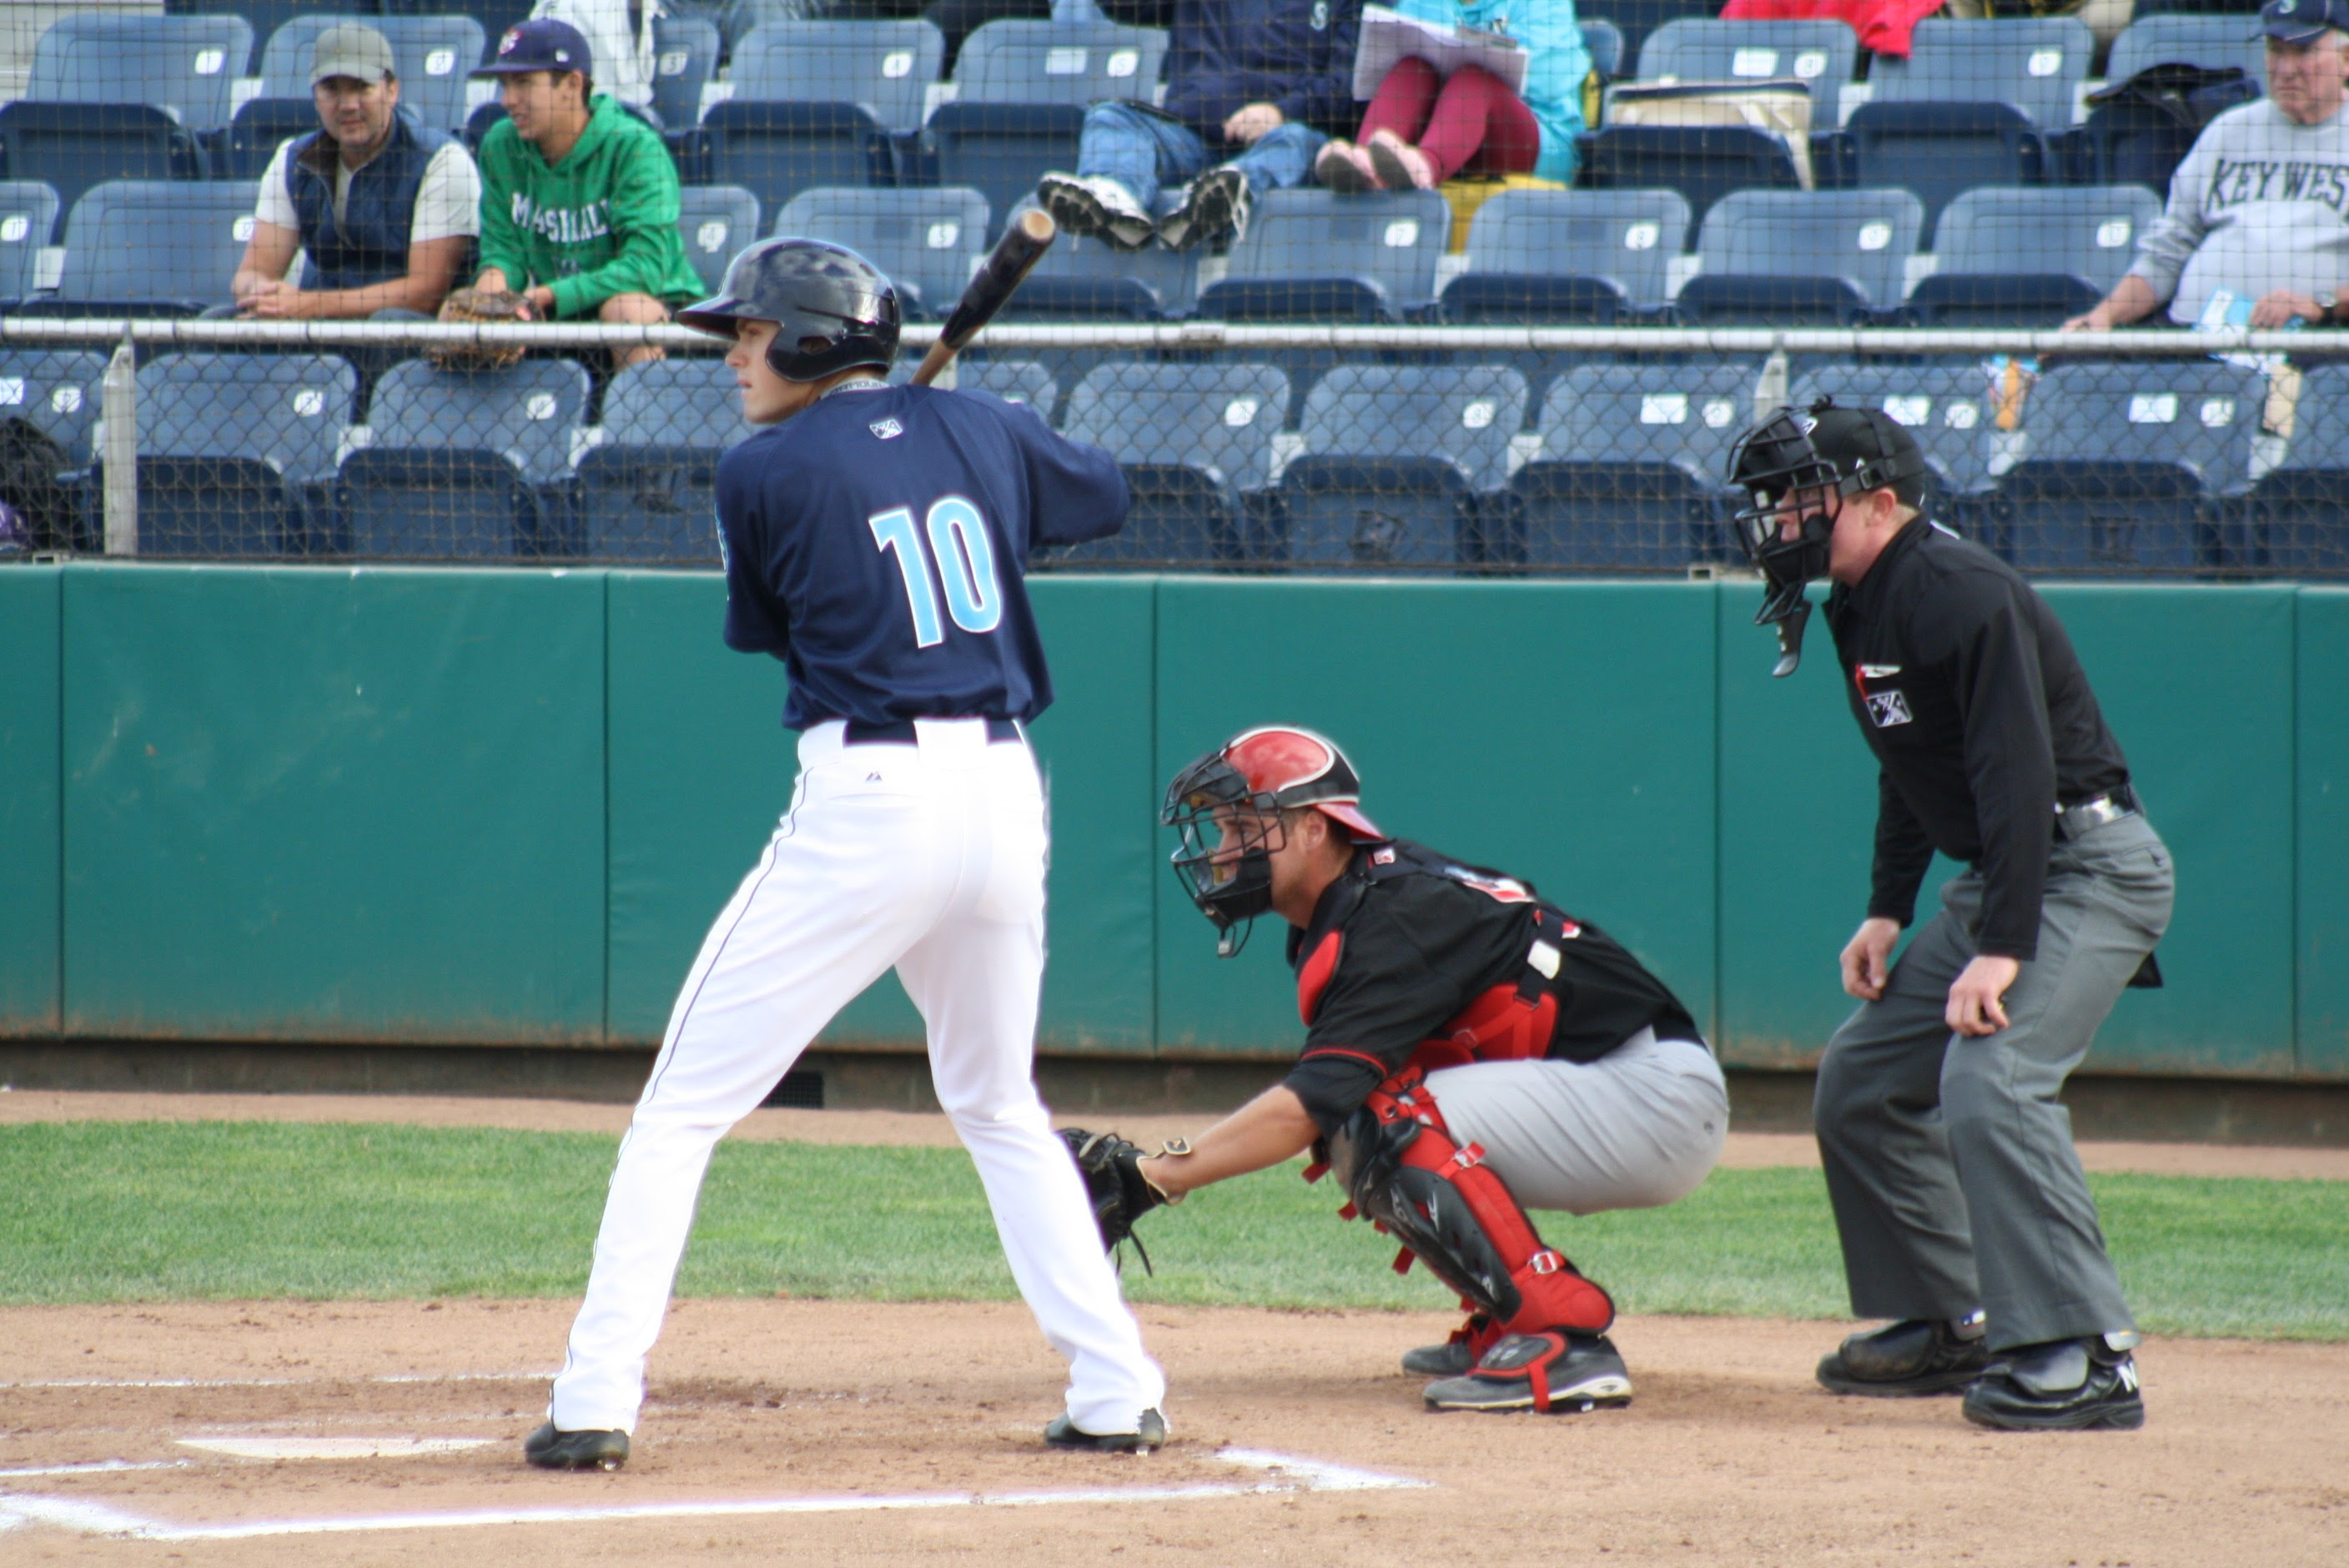 AquaSox struggle to find identities; Pitching needs to settle down in rough homestand